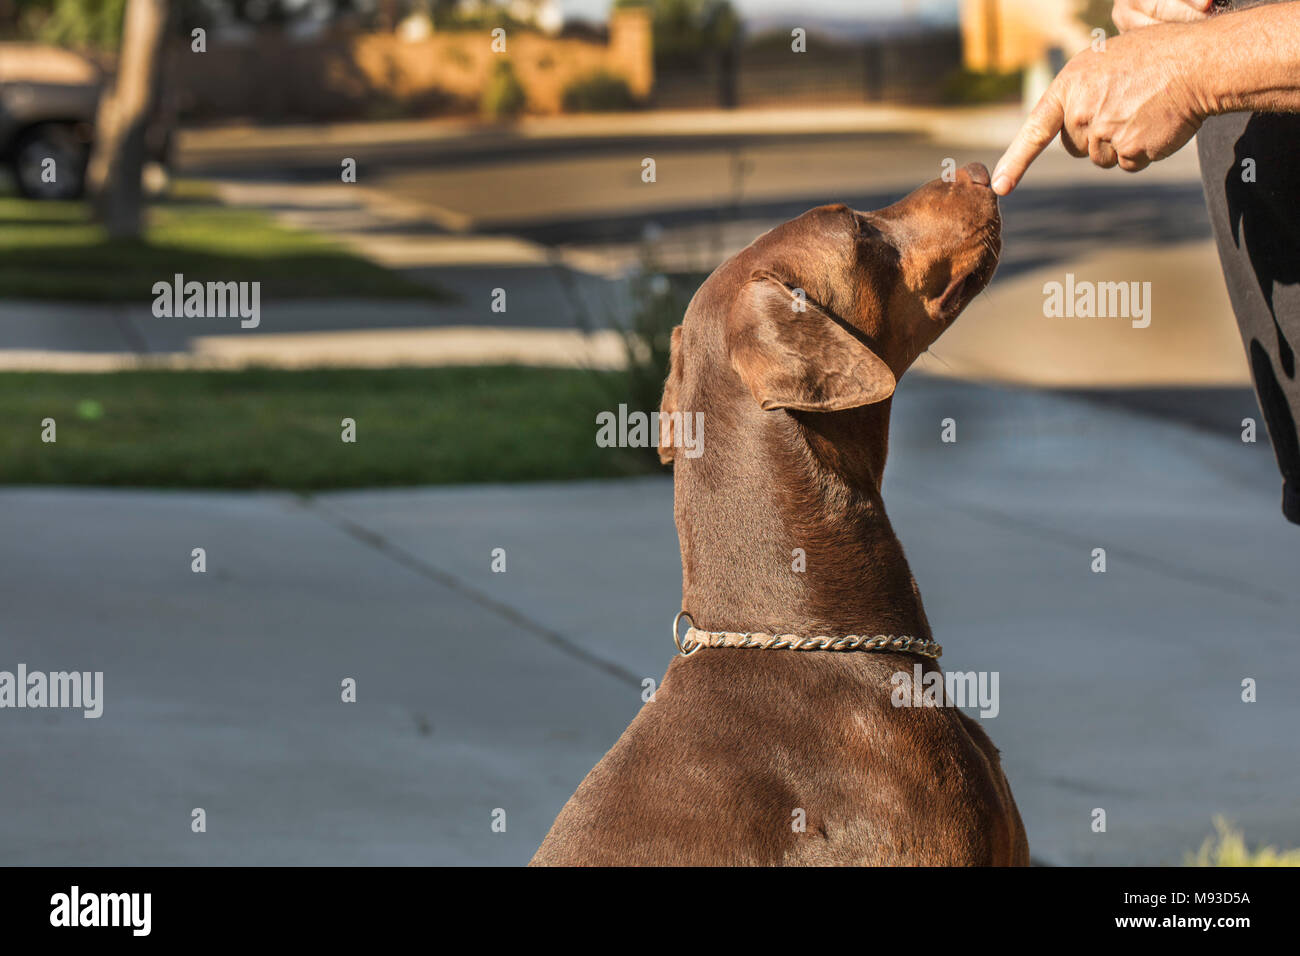 Doberman Pinscher dog being trained to sit and pay attention - Stock Image